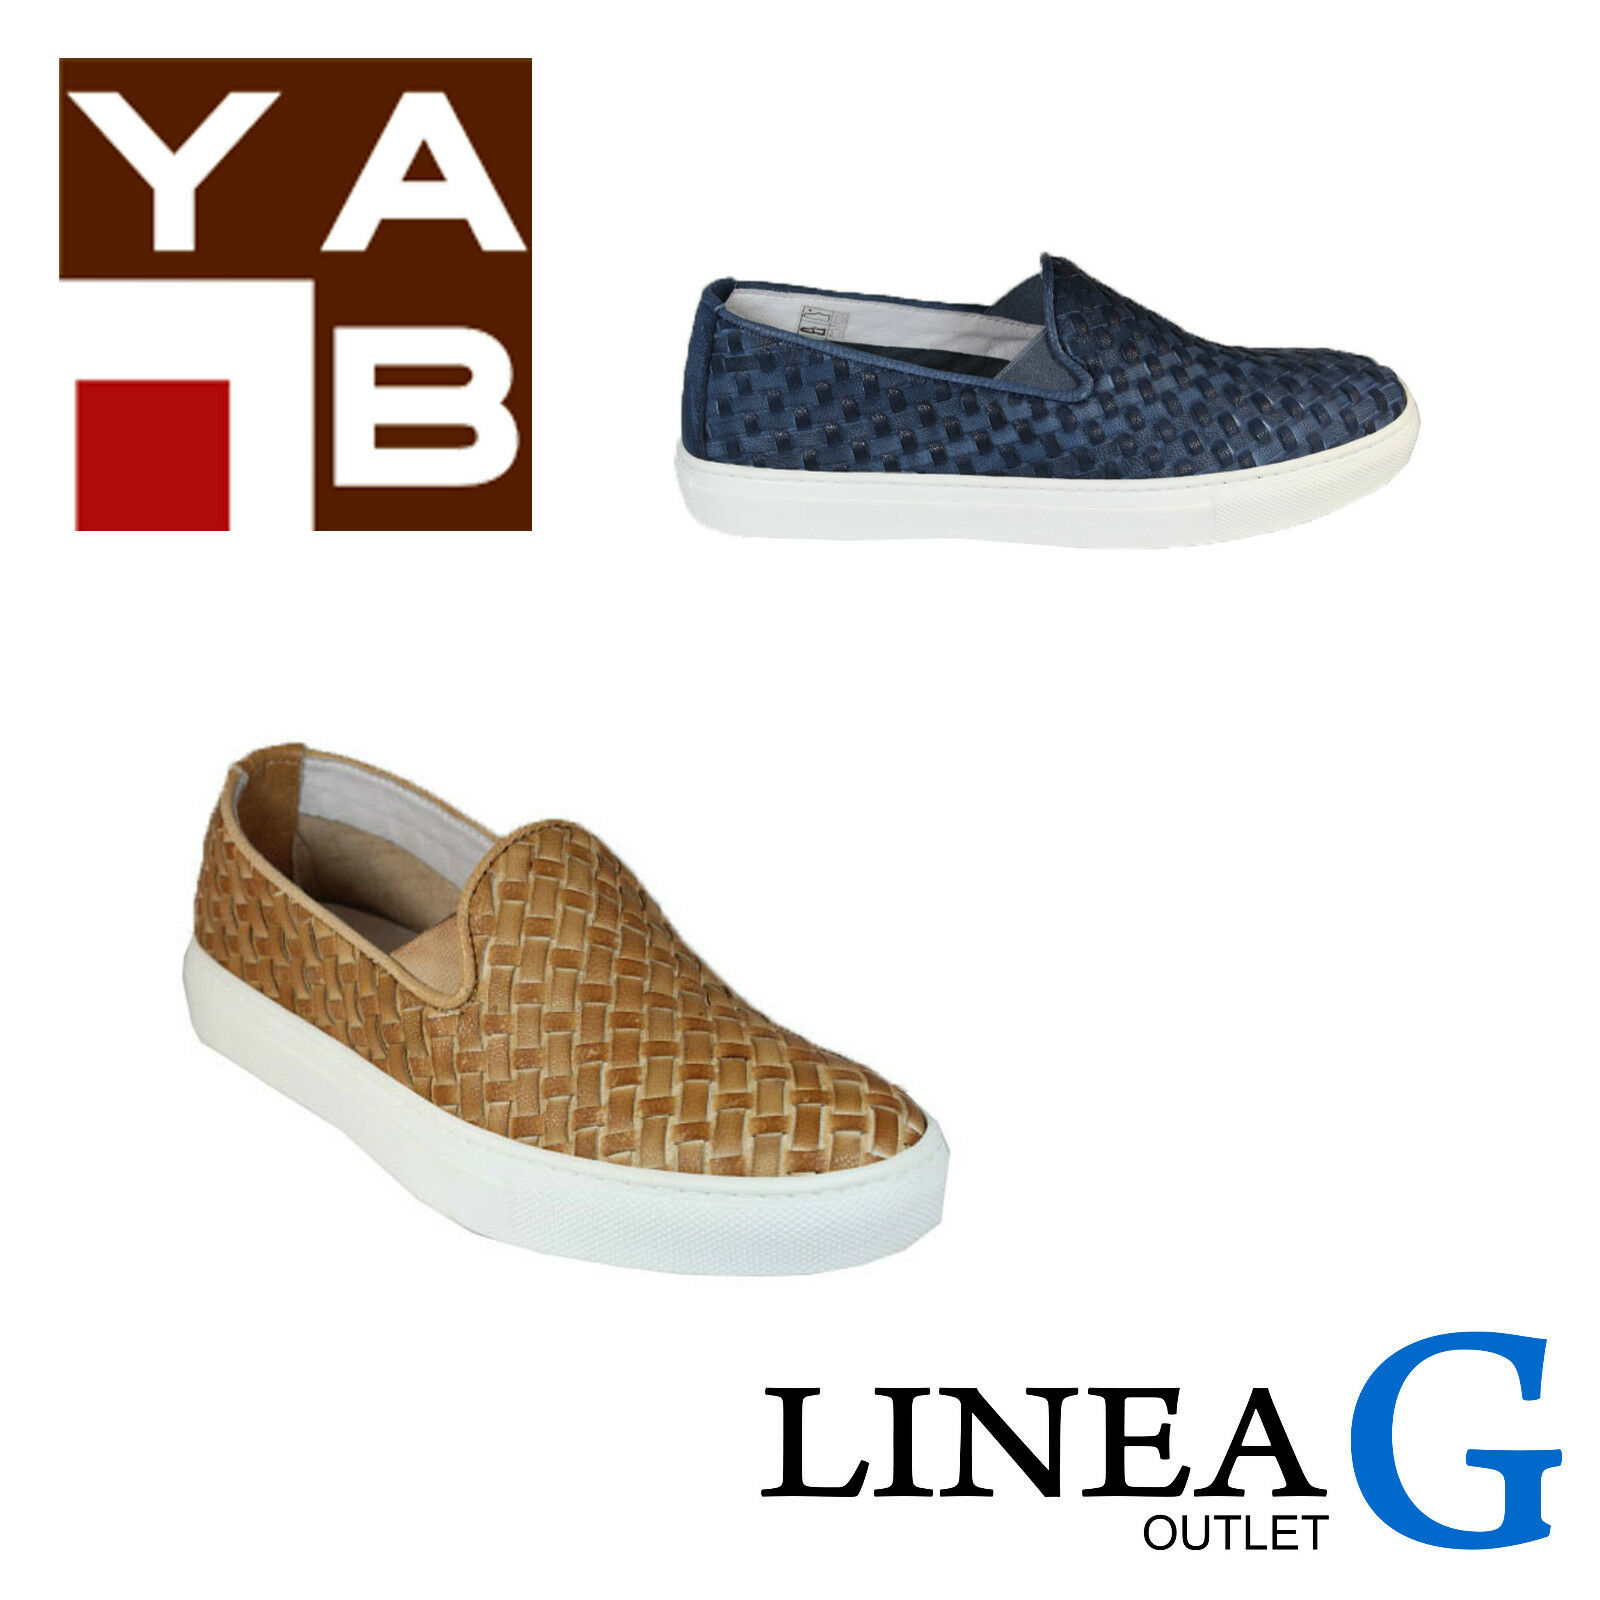 Pantofole da uomo YAB leather slip on sneakers S/S 2016 slip on in pelle intrecciata P/E 2016